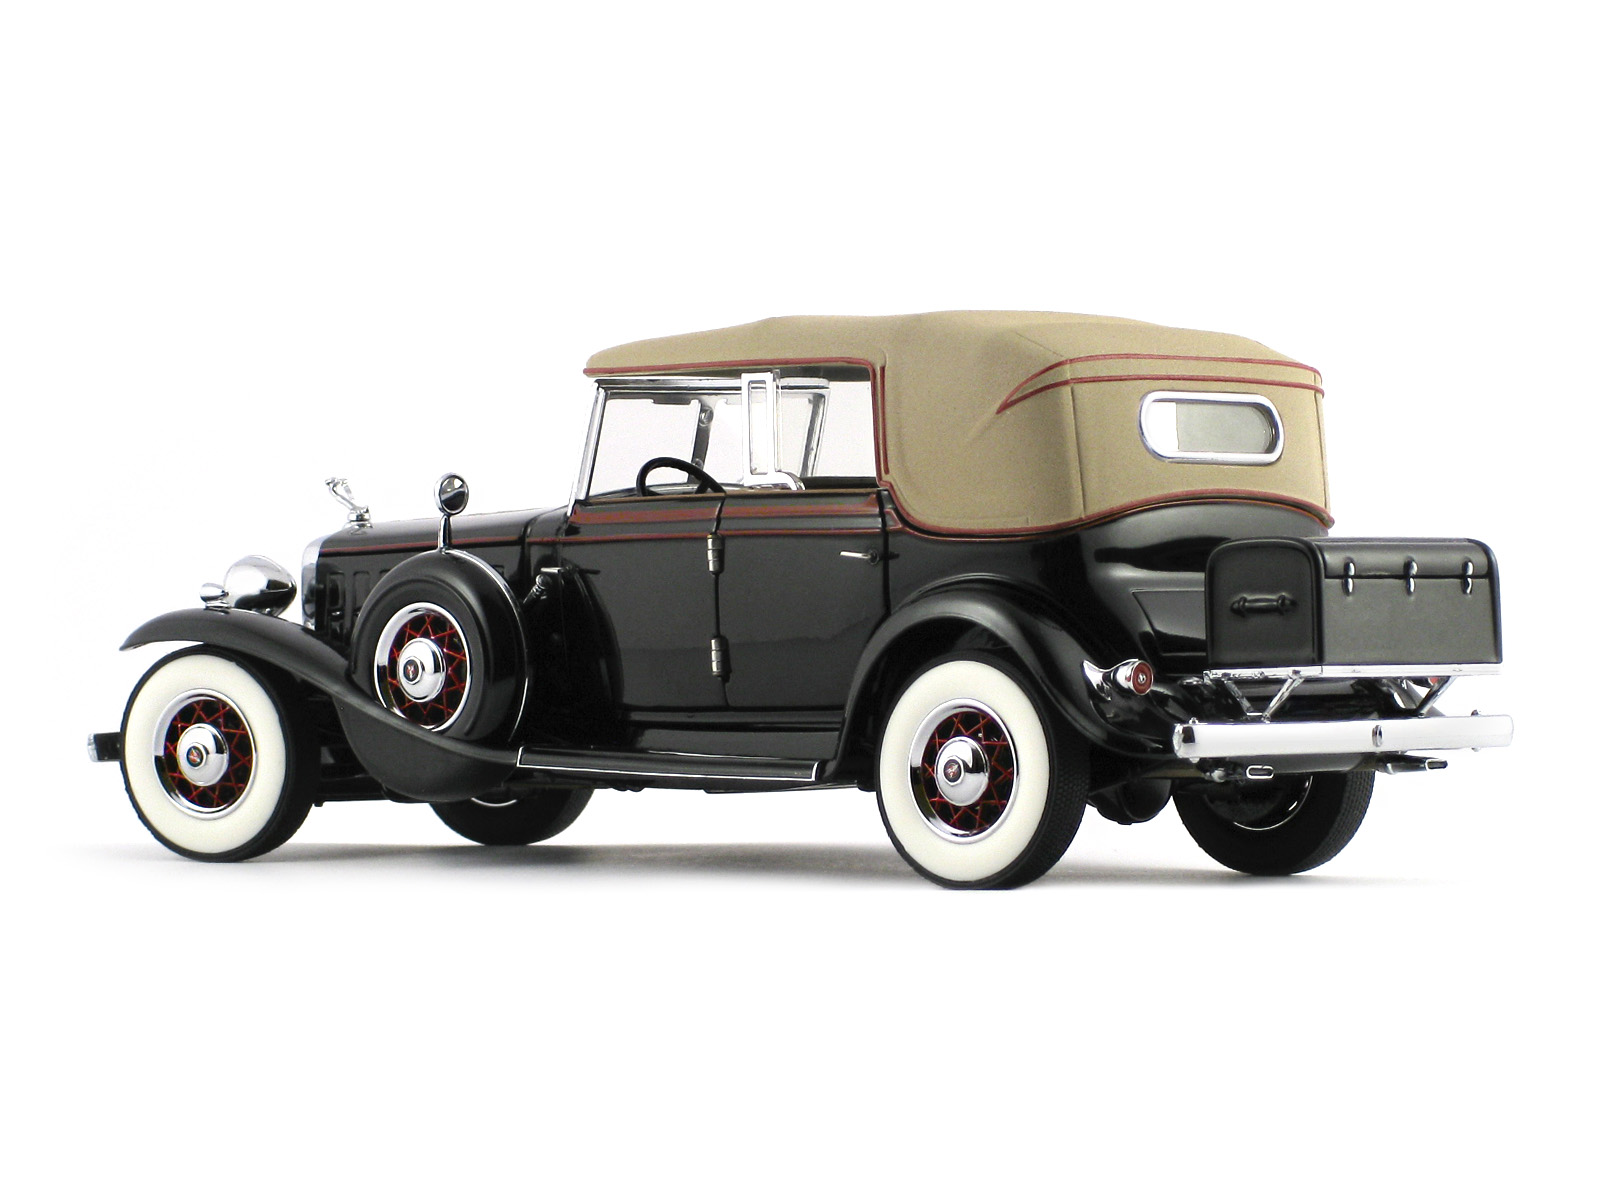 ford of franklin html with 1932 Cadillac V 16 Sport Phaeton Eliot on The Japanese And Manchuria furthermore Mb605 also Mb299 furthermore 1969 Dodge Charger General Lee Danbury also 1956 Packard Caribbean Hardtop Danbury.